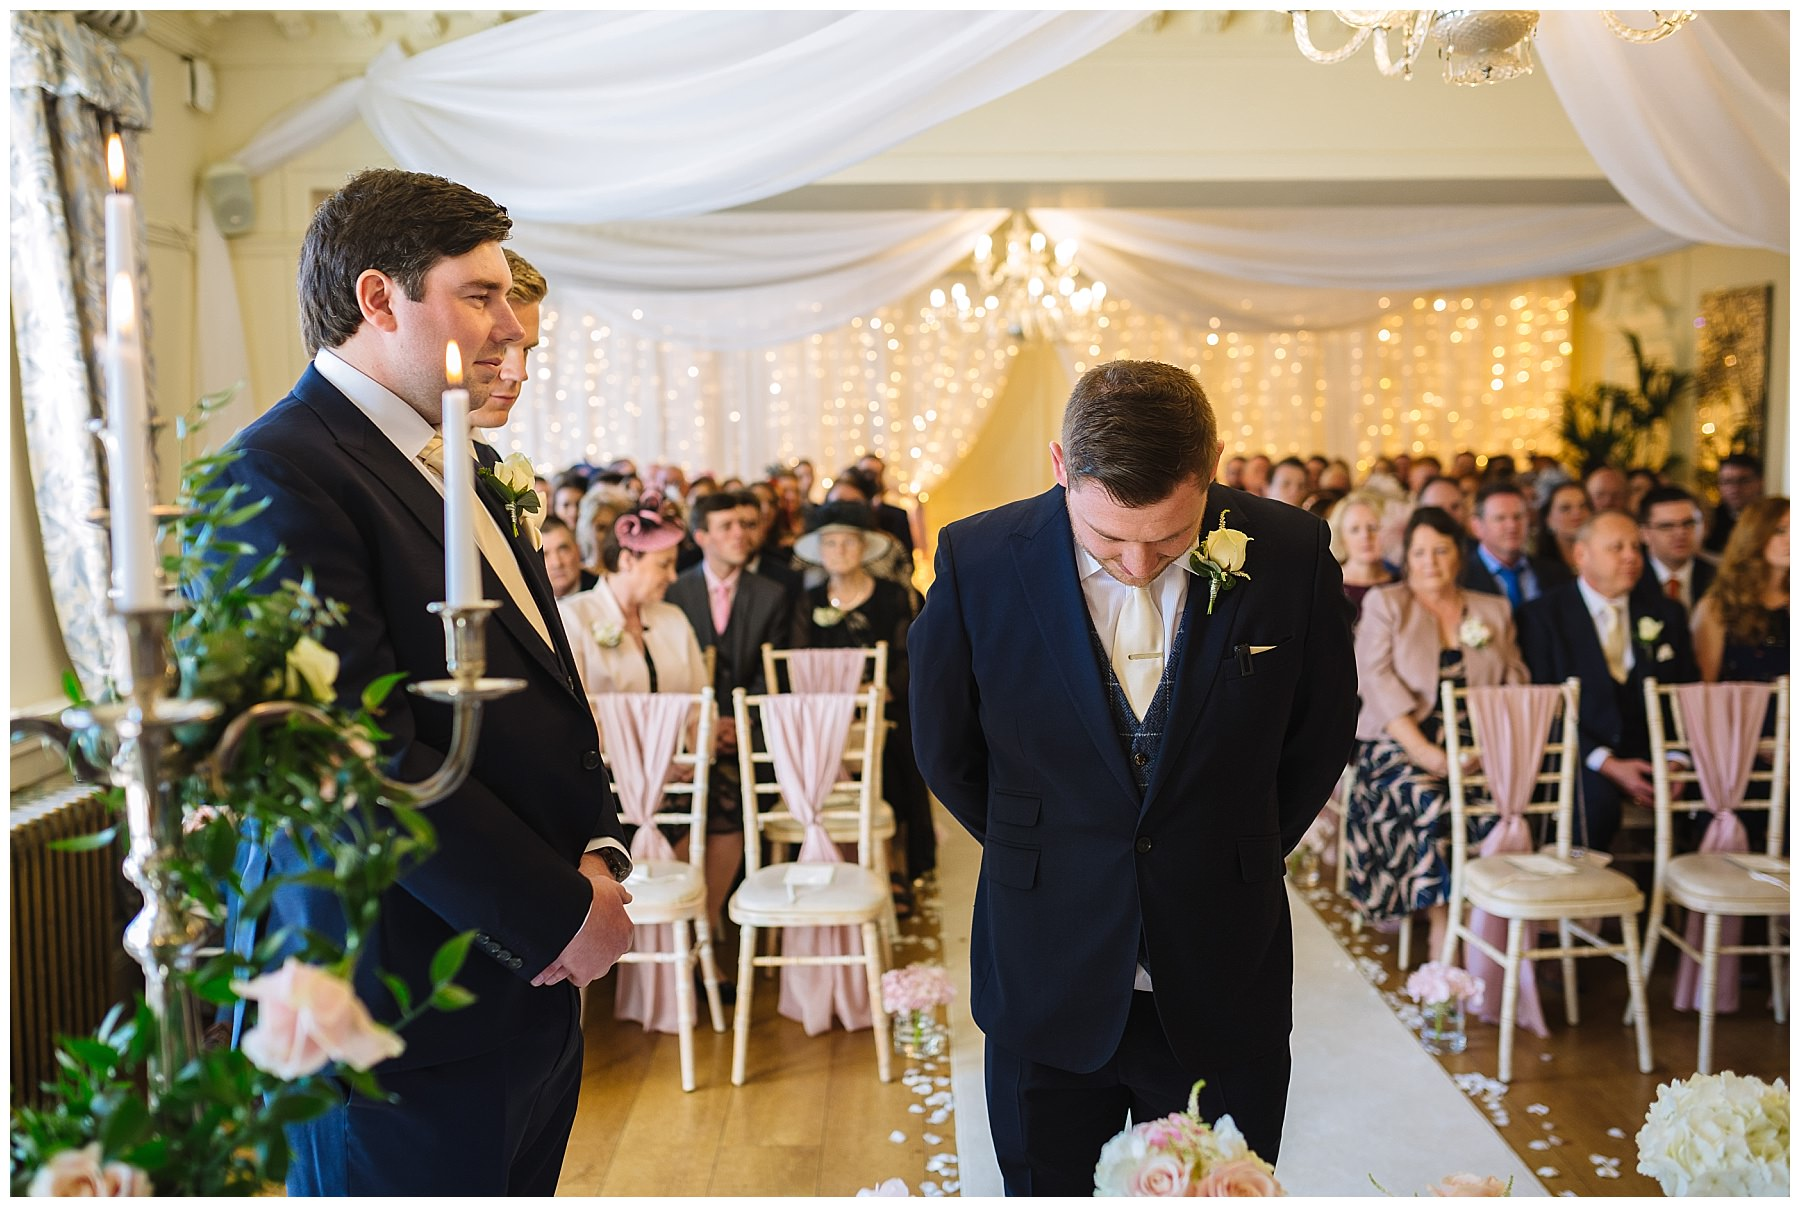 Groom waits nervously for bride in Eaves hall wedding ceremony room